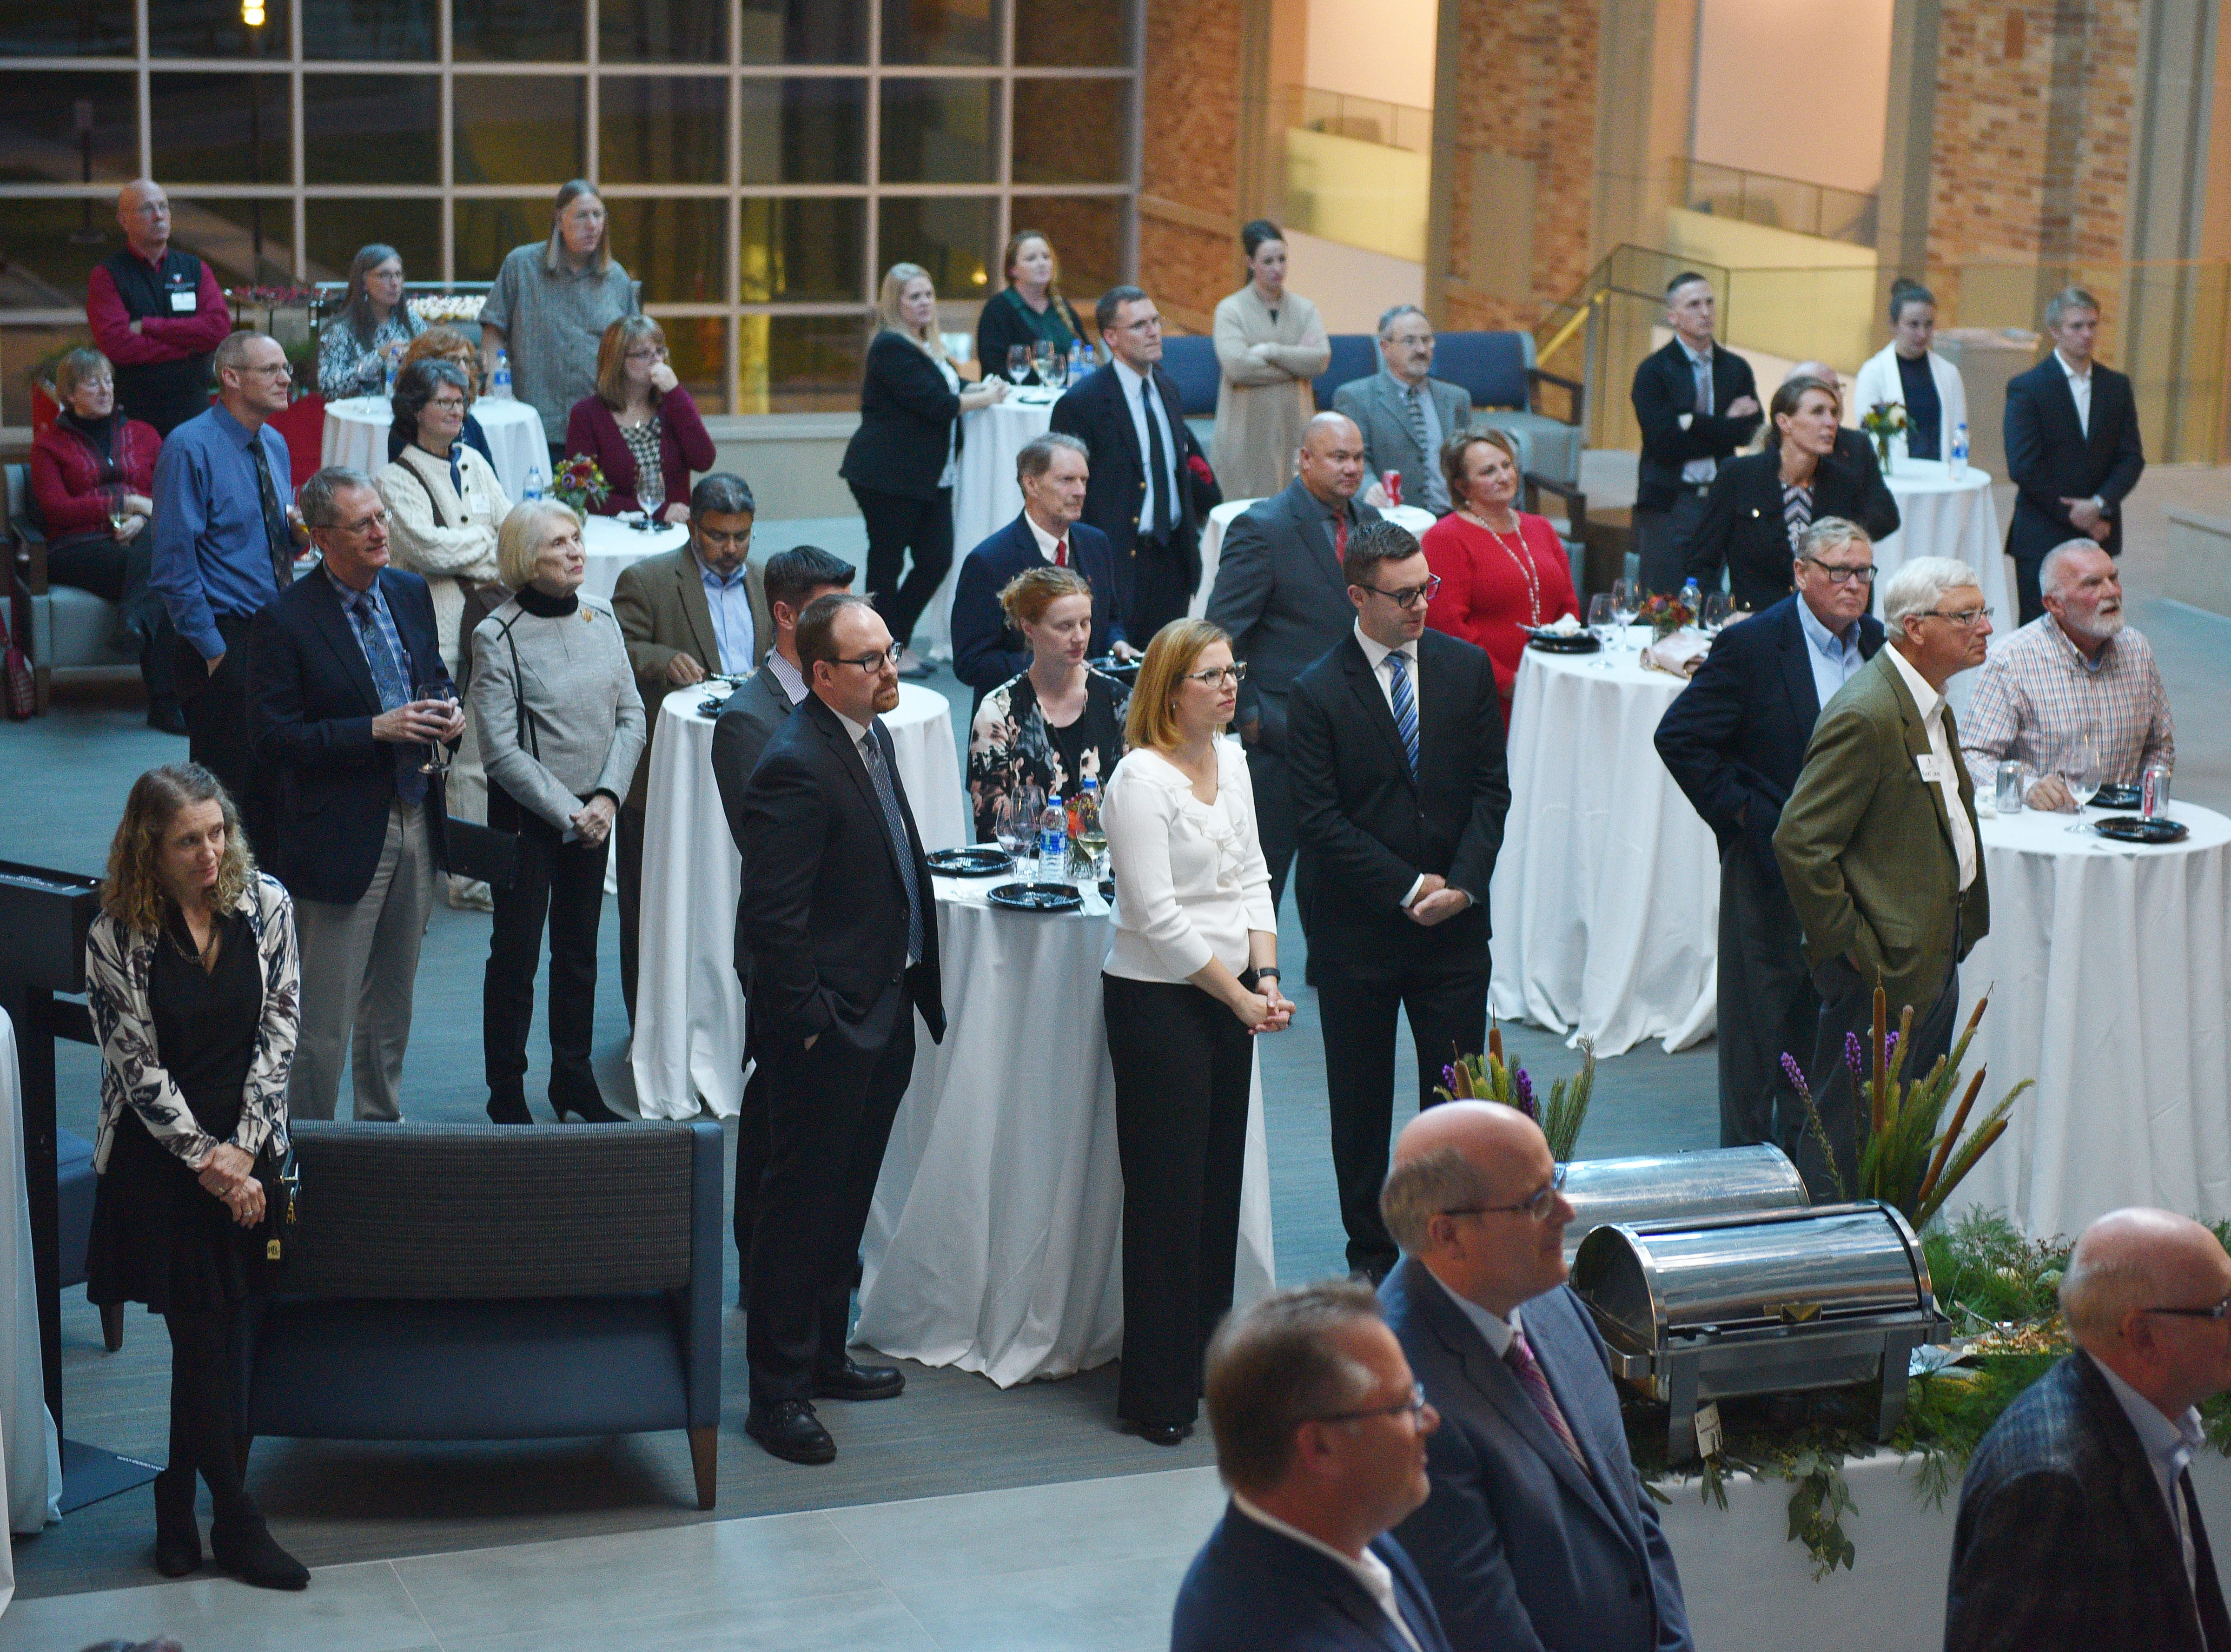 USD 60th Anniversary celebration Wednesday, Oct. 24, at Sanford Imagenetics in Sioux Falls.